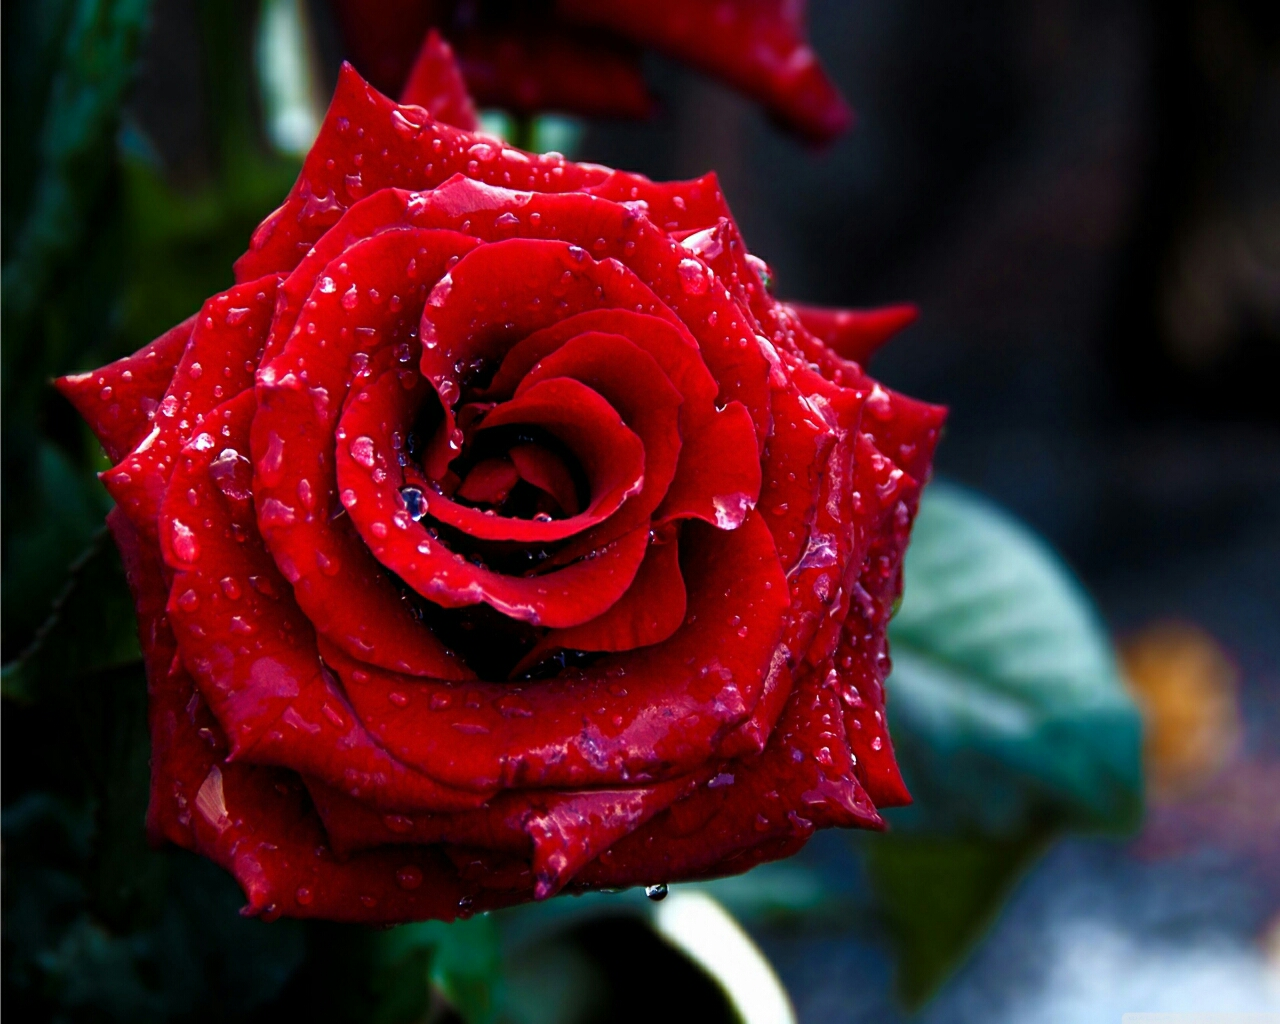 Flowers for flower lovers flowers wallpapers red roses - Red rose flower hd images ...